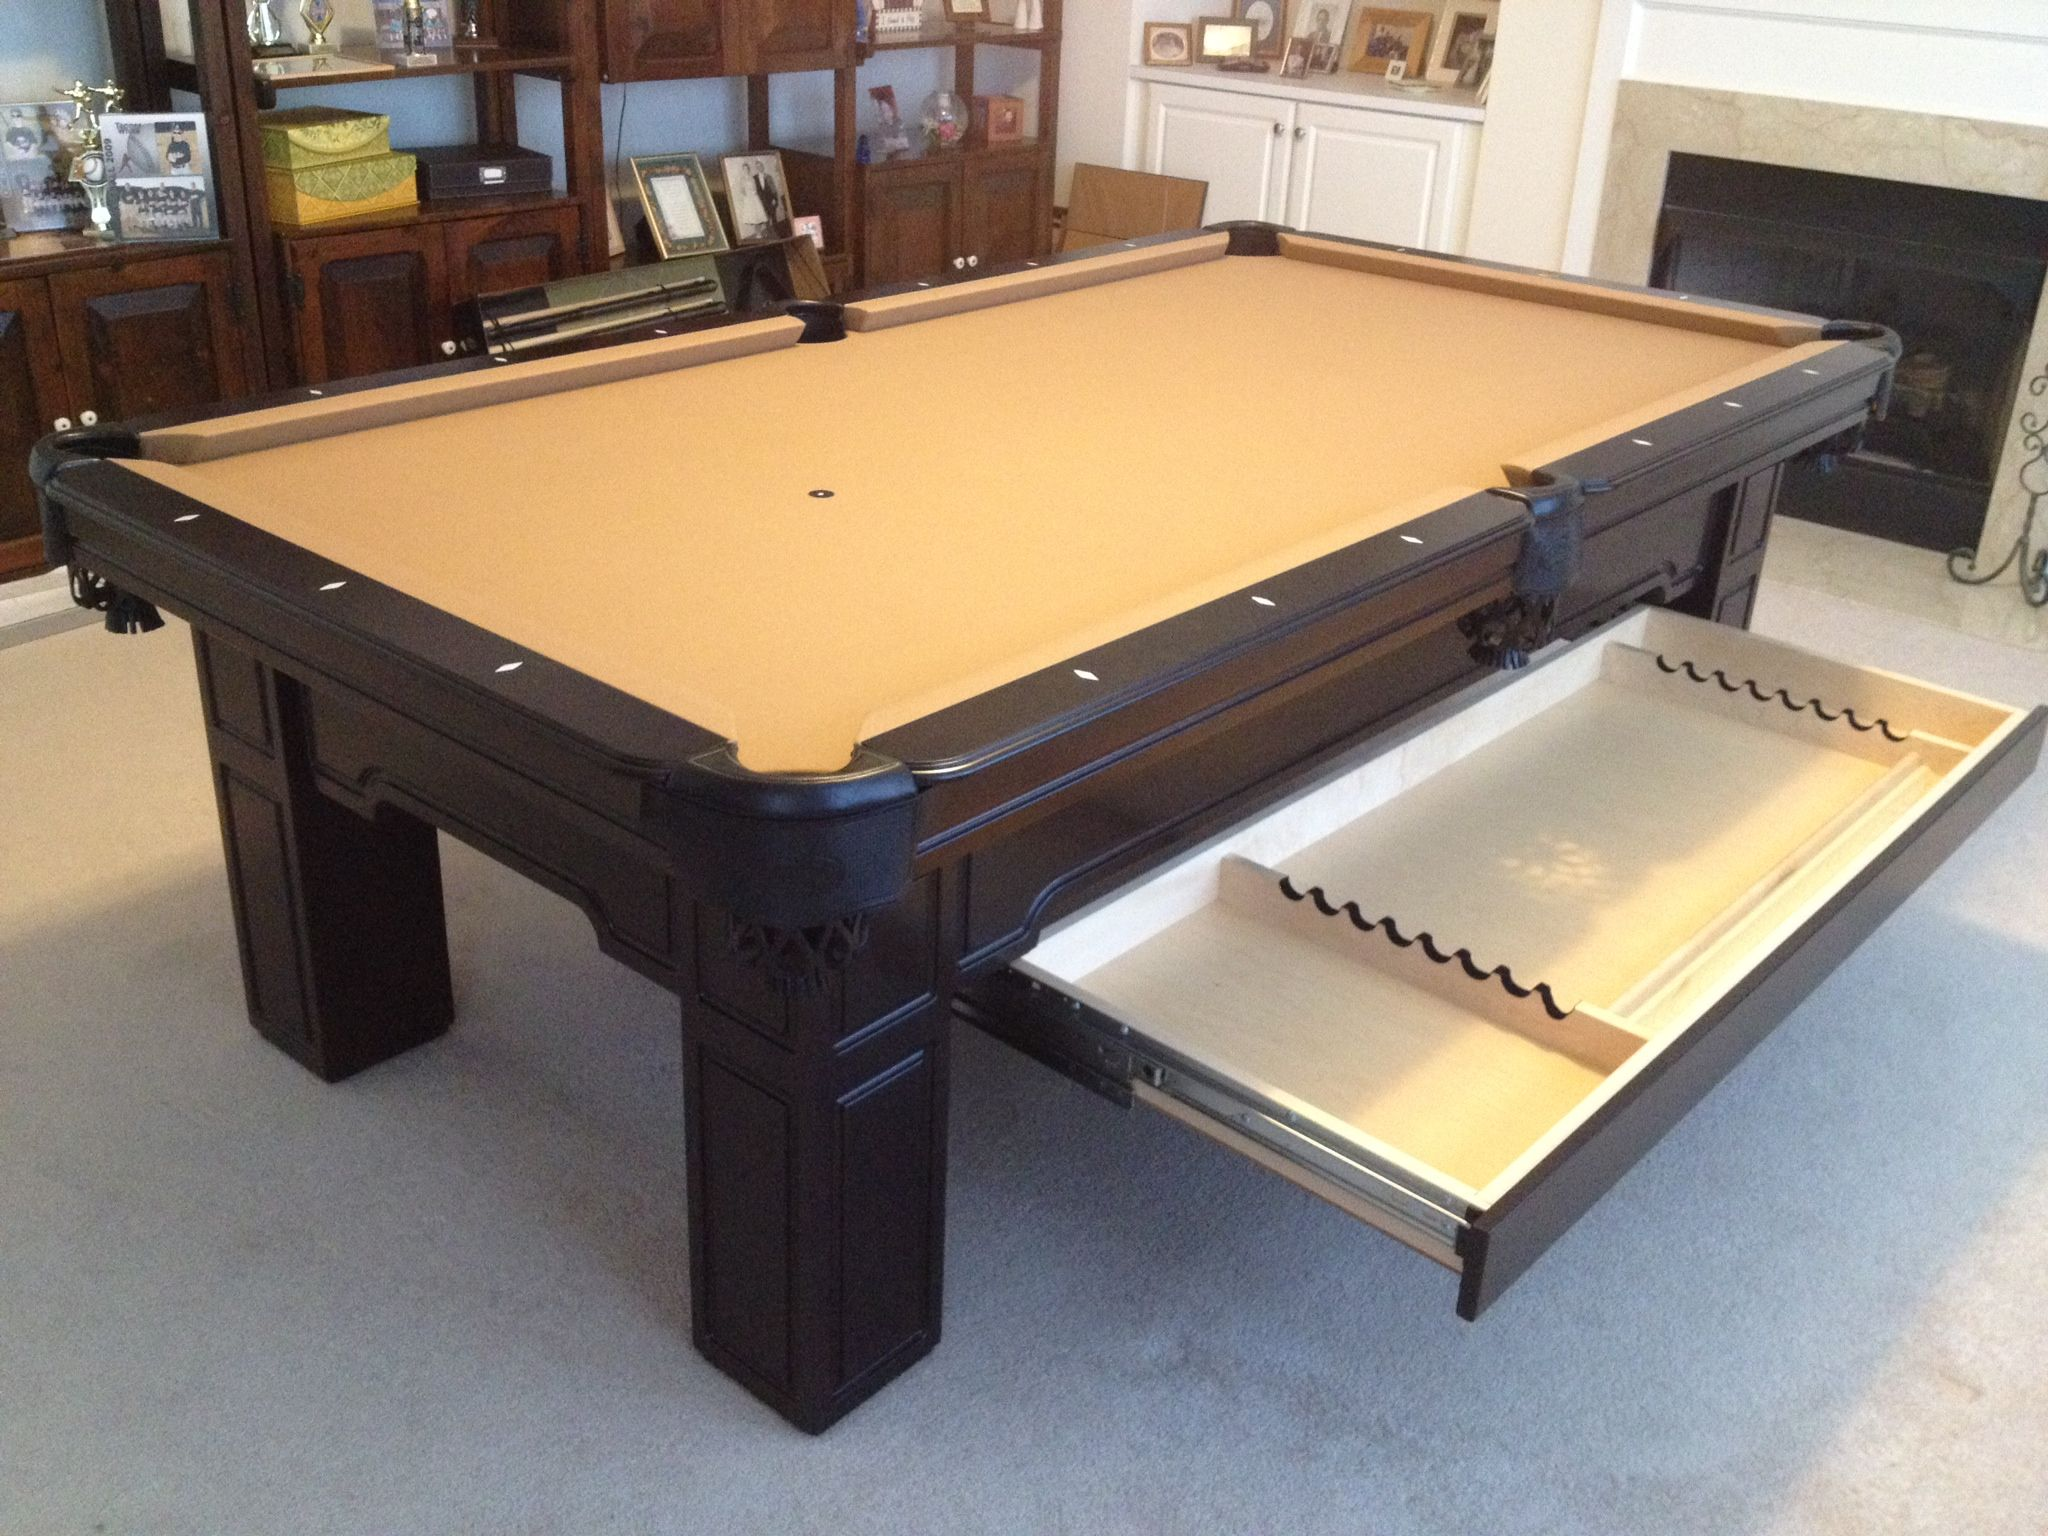 olhausen pool net gallery montrachet everythingbilliards pinterest tables pin table